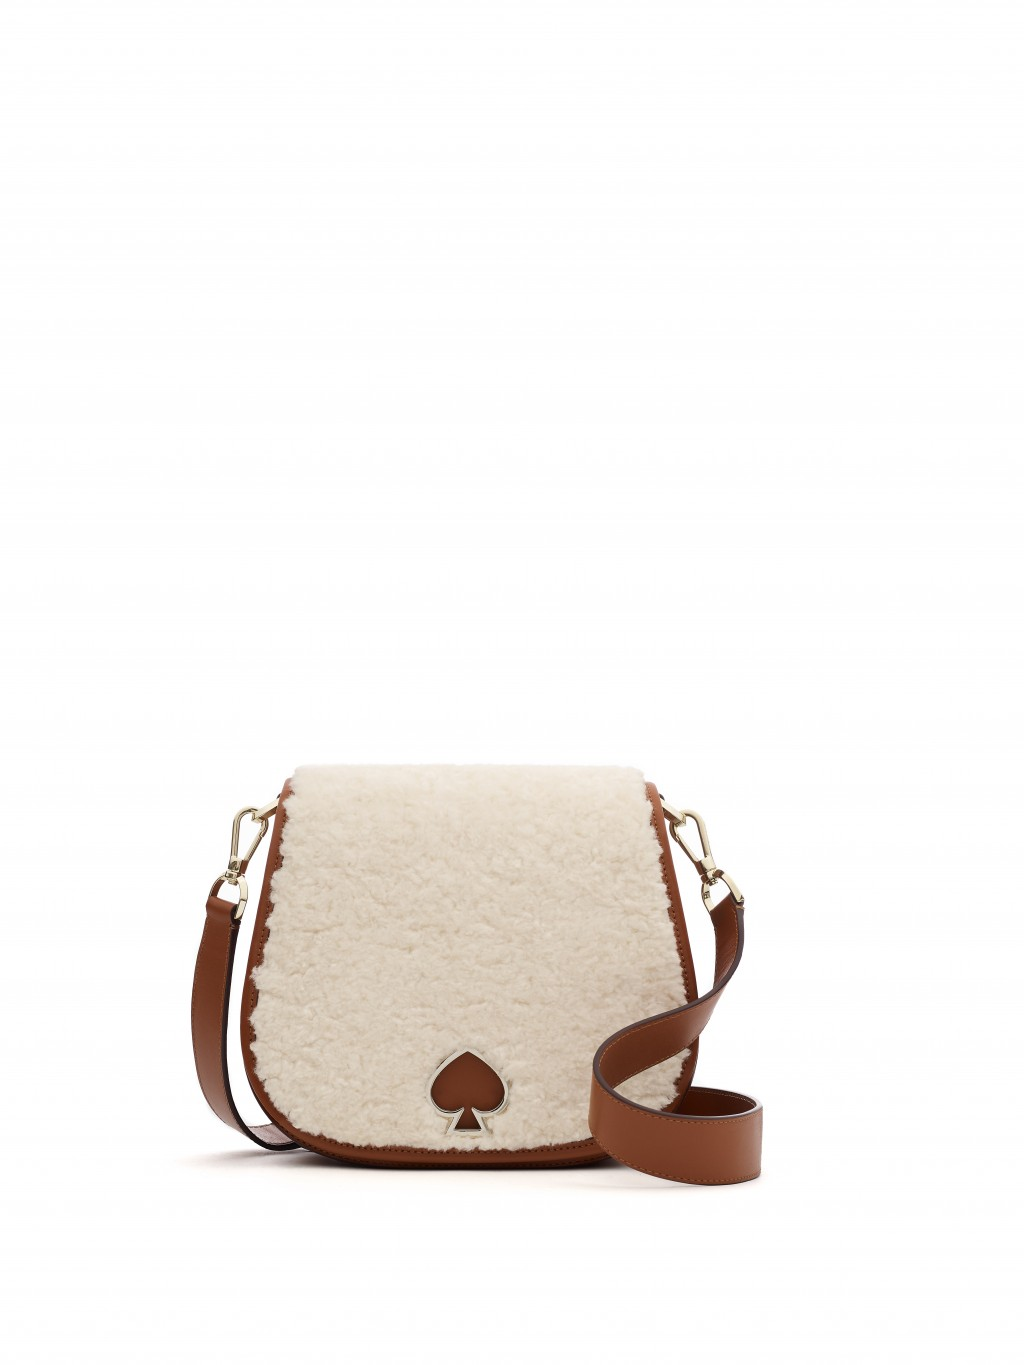 This photo shows the Kate Spade Suzy large saddle bag in shearling. From tablescapes to apparel, the gift possibilities in white are endless for the h...